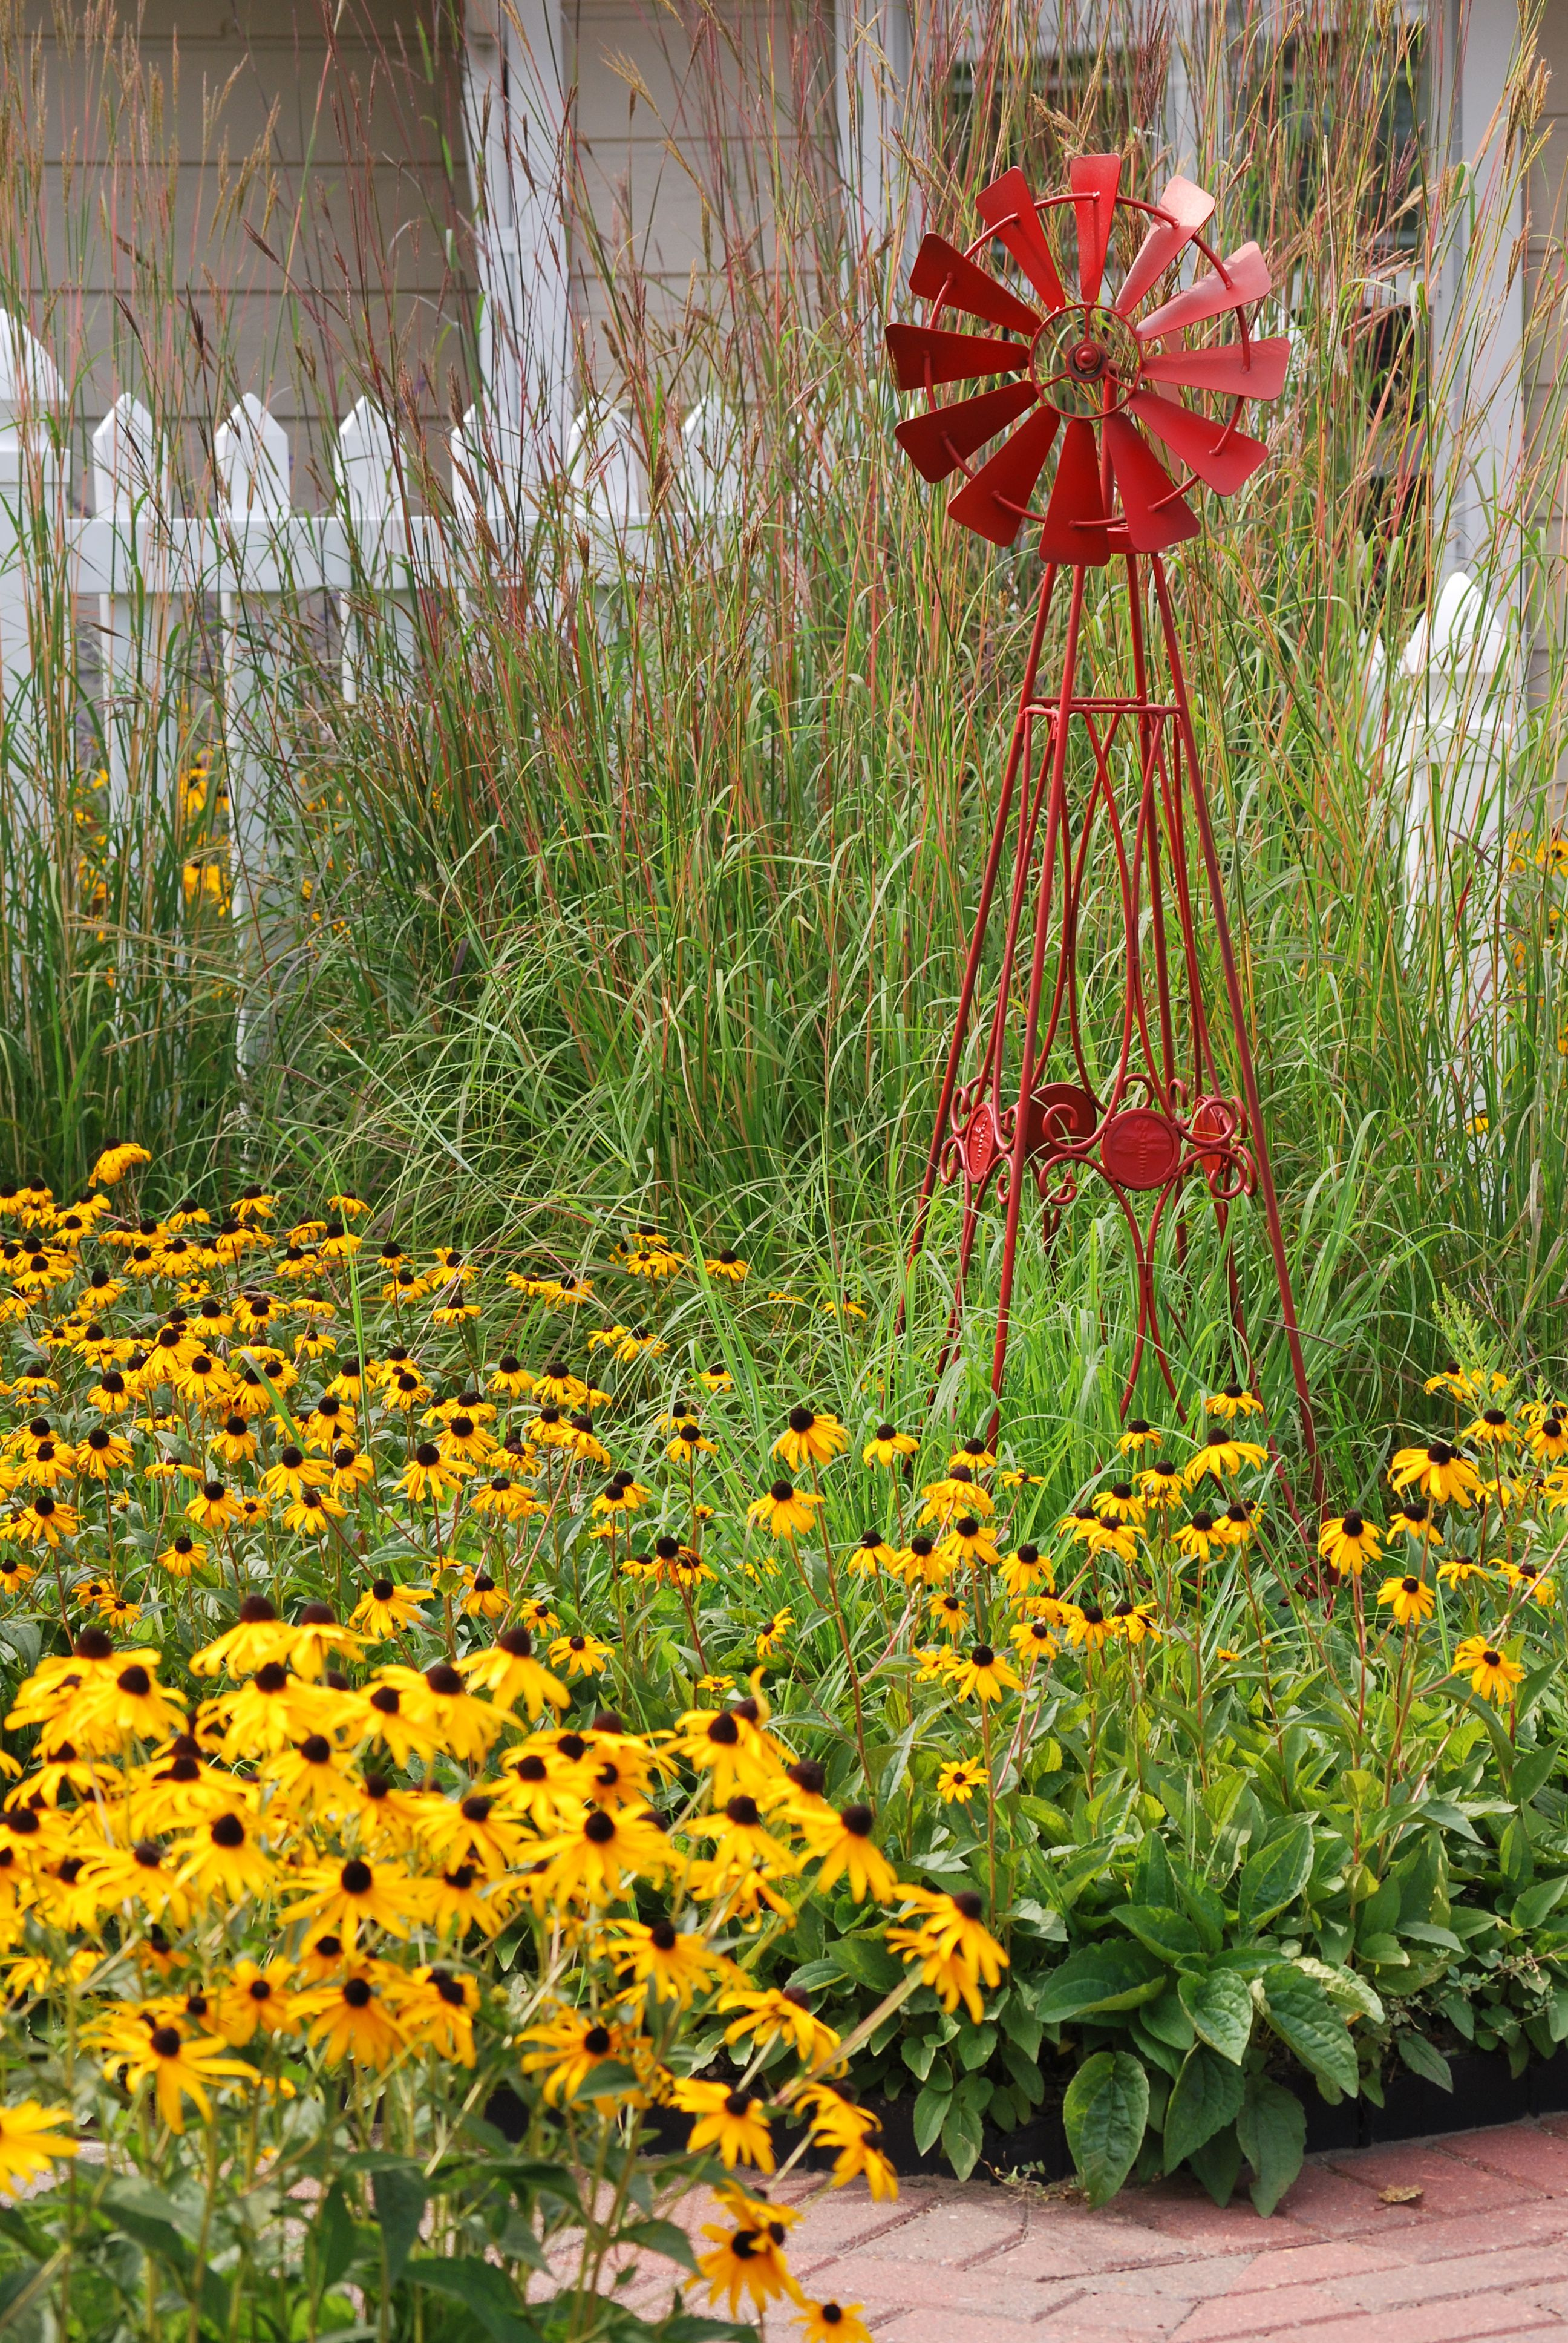 Black Eyed Susans, Red Metal Windmill And Ornamental Grass / So Prairie  Pretty!